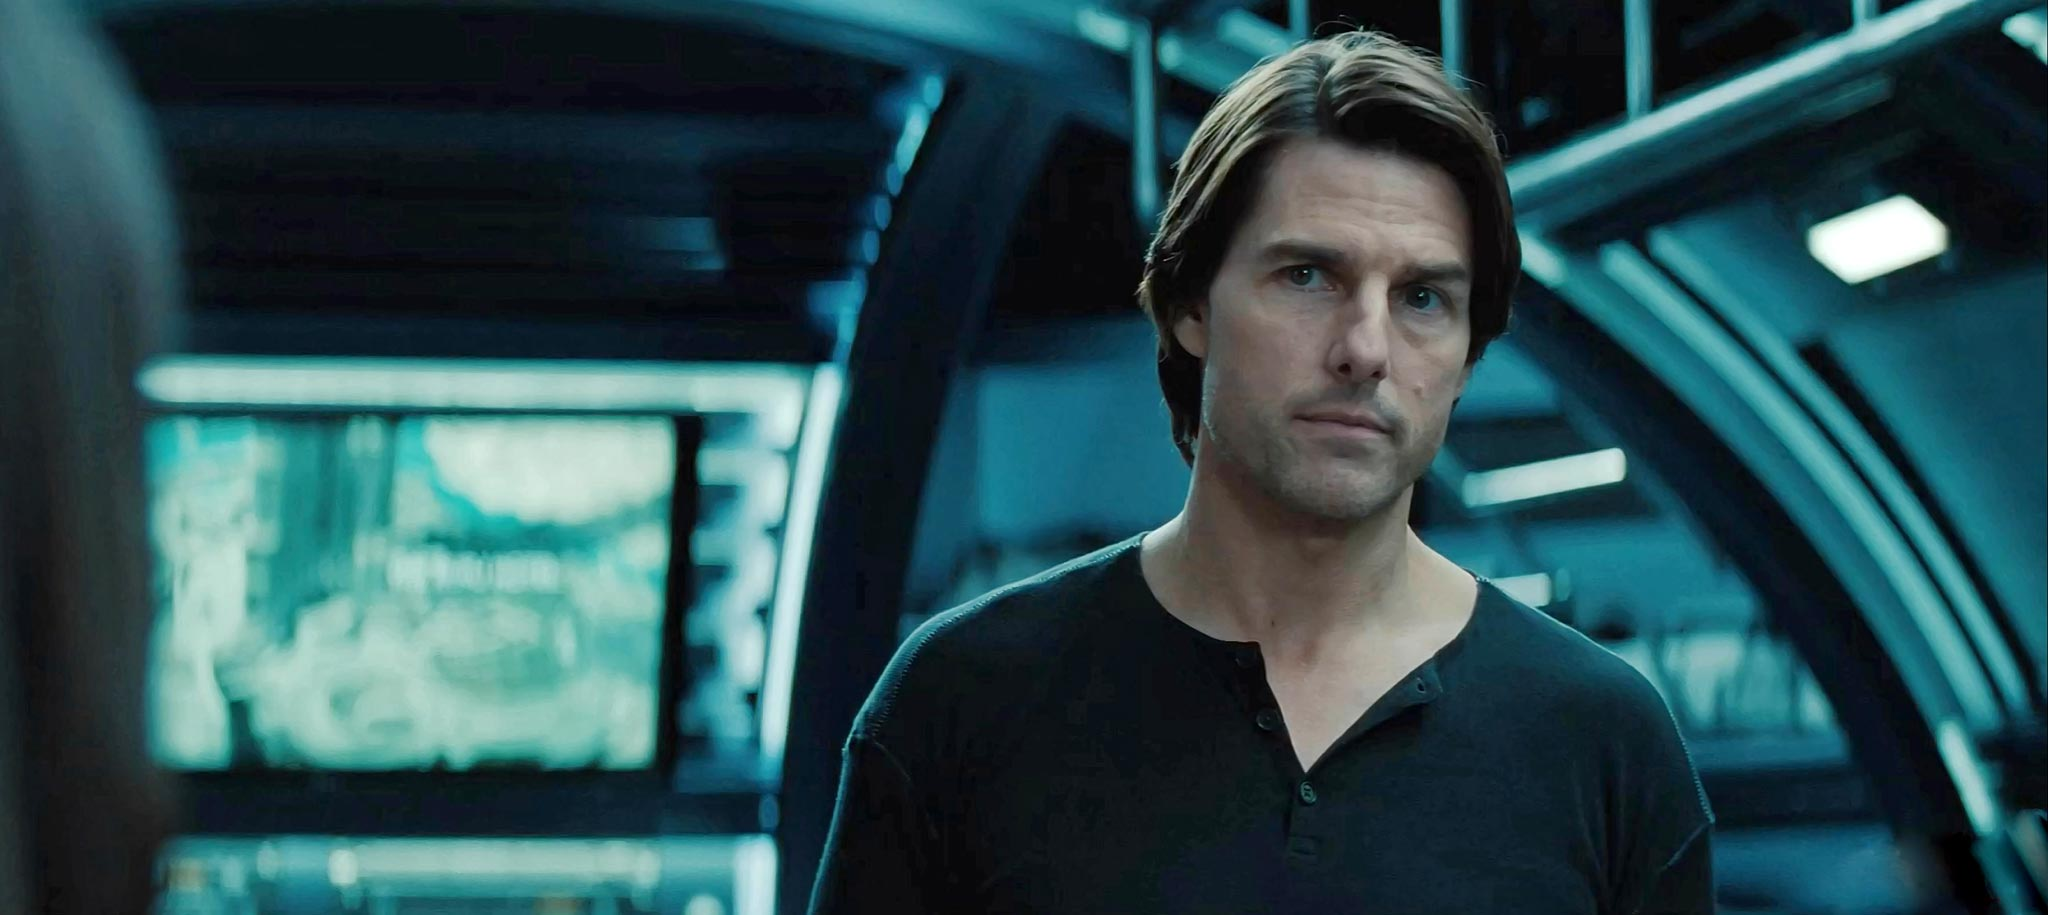 Second MISSION: IMPOSSIBLE GHOST PROTOCOL Trailer - FilmoFilia